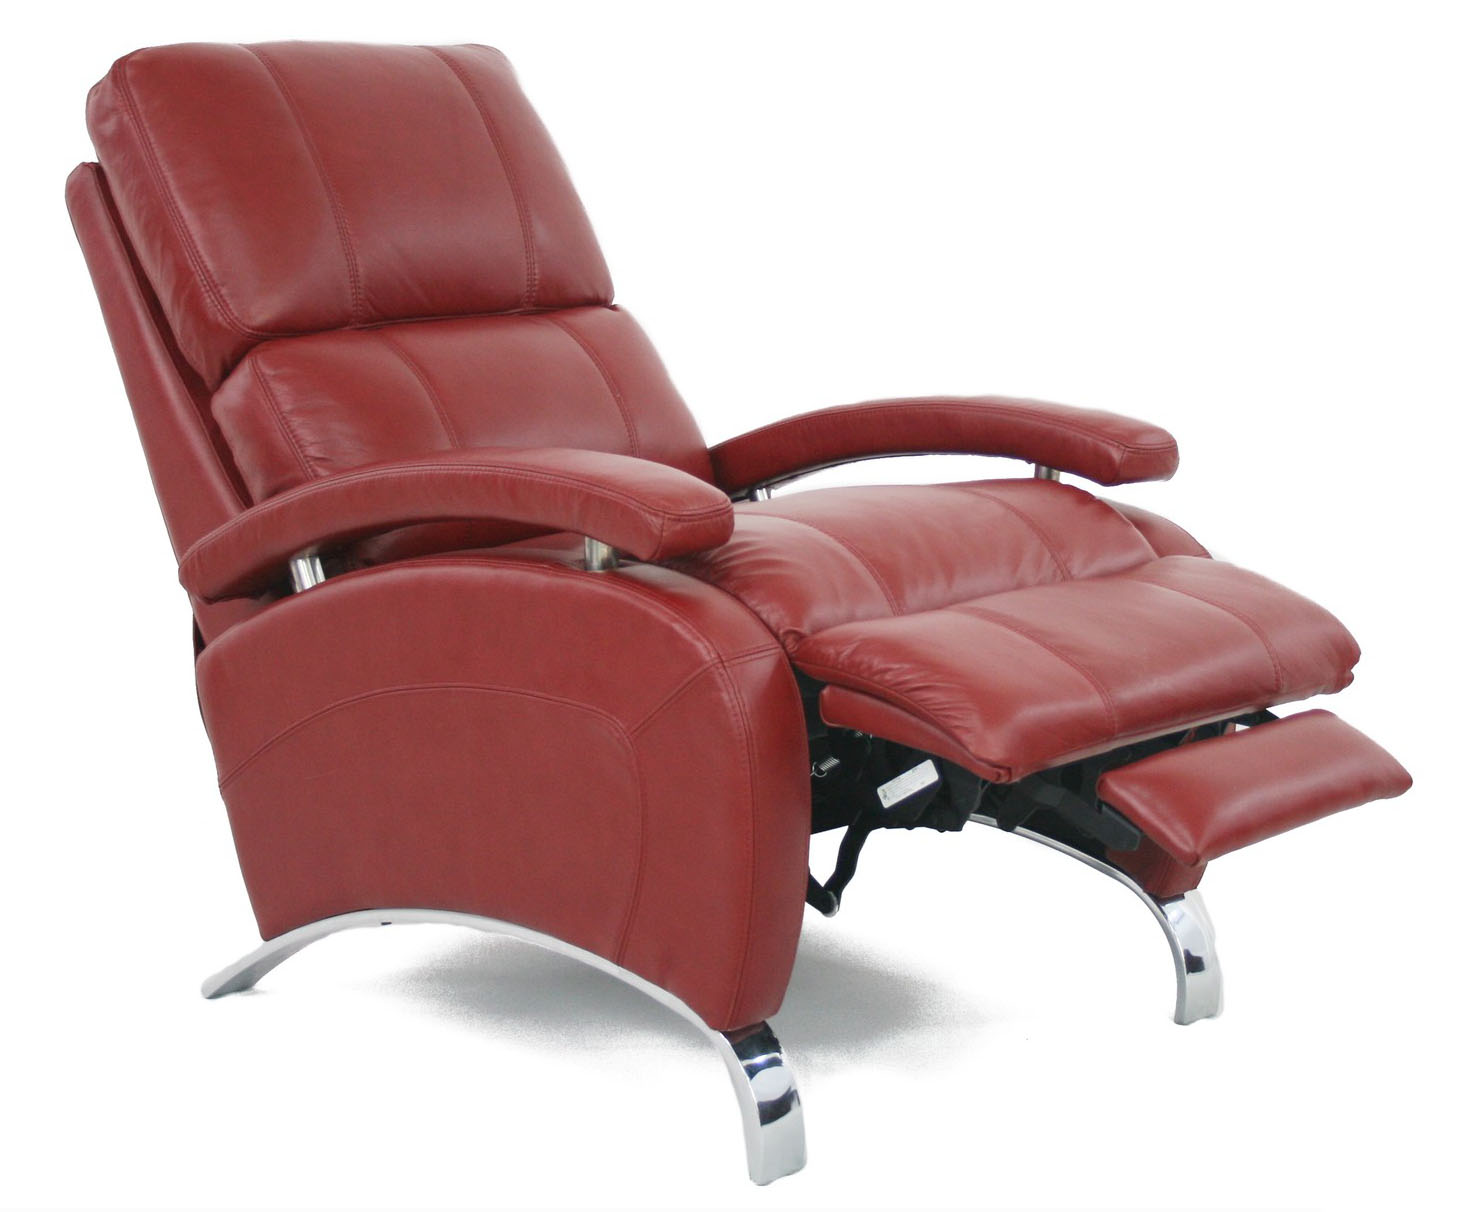 Red Recliner Chair Chairs amp Seating